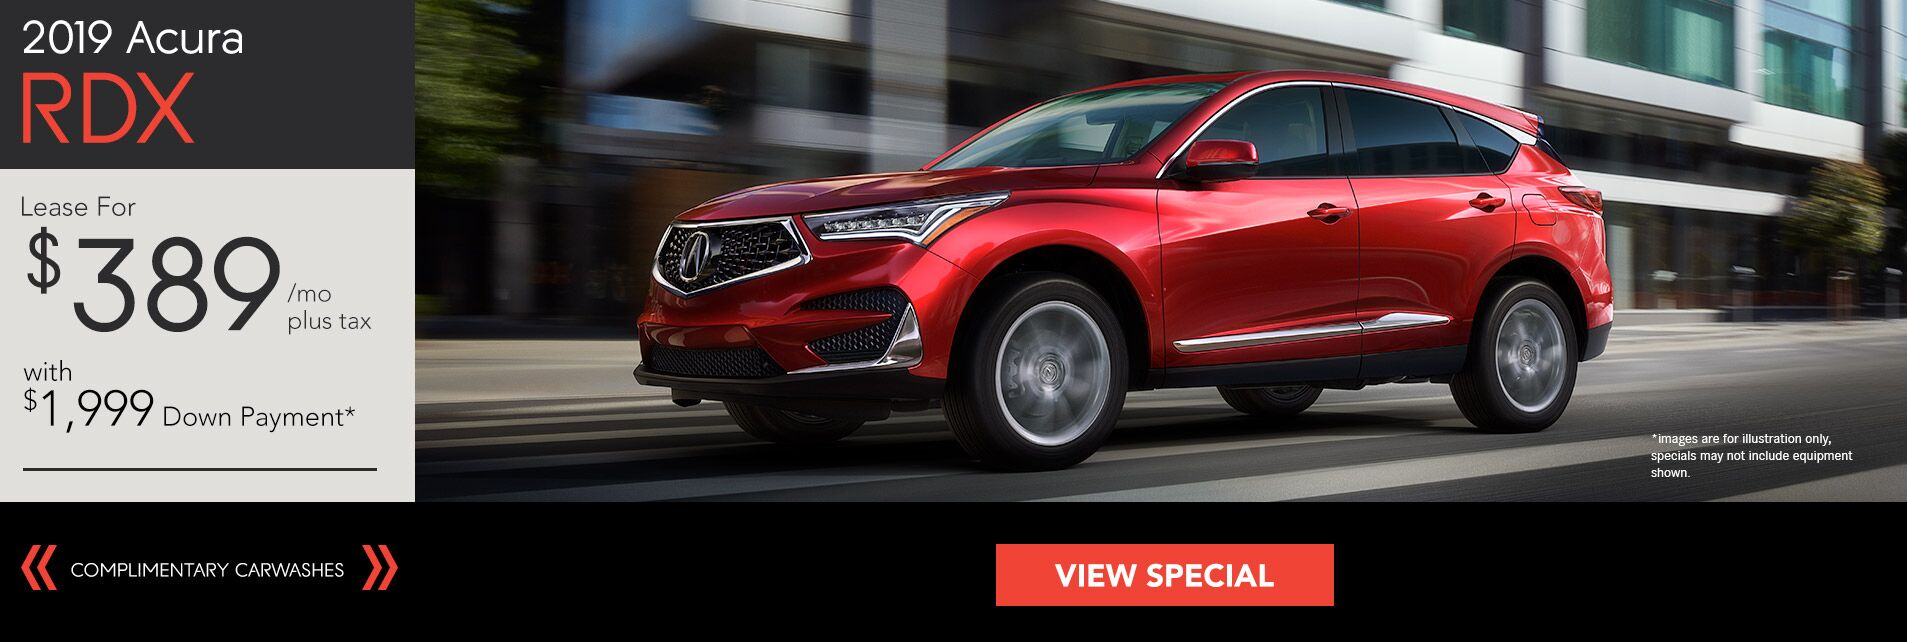 2019 Acura RDX for $389/36Mo. with $1,999 Down